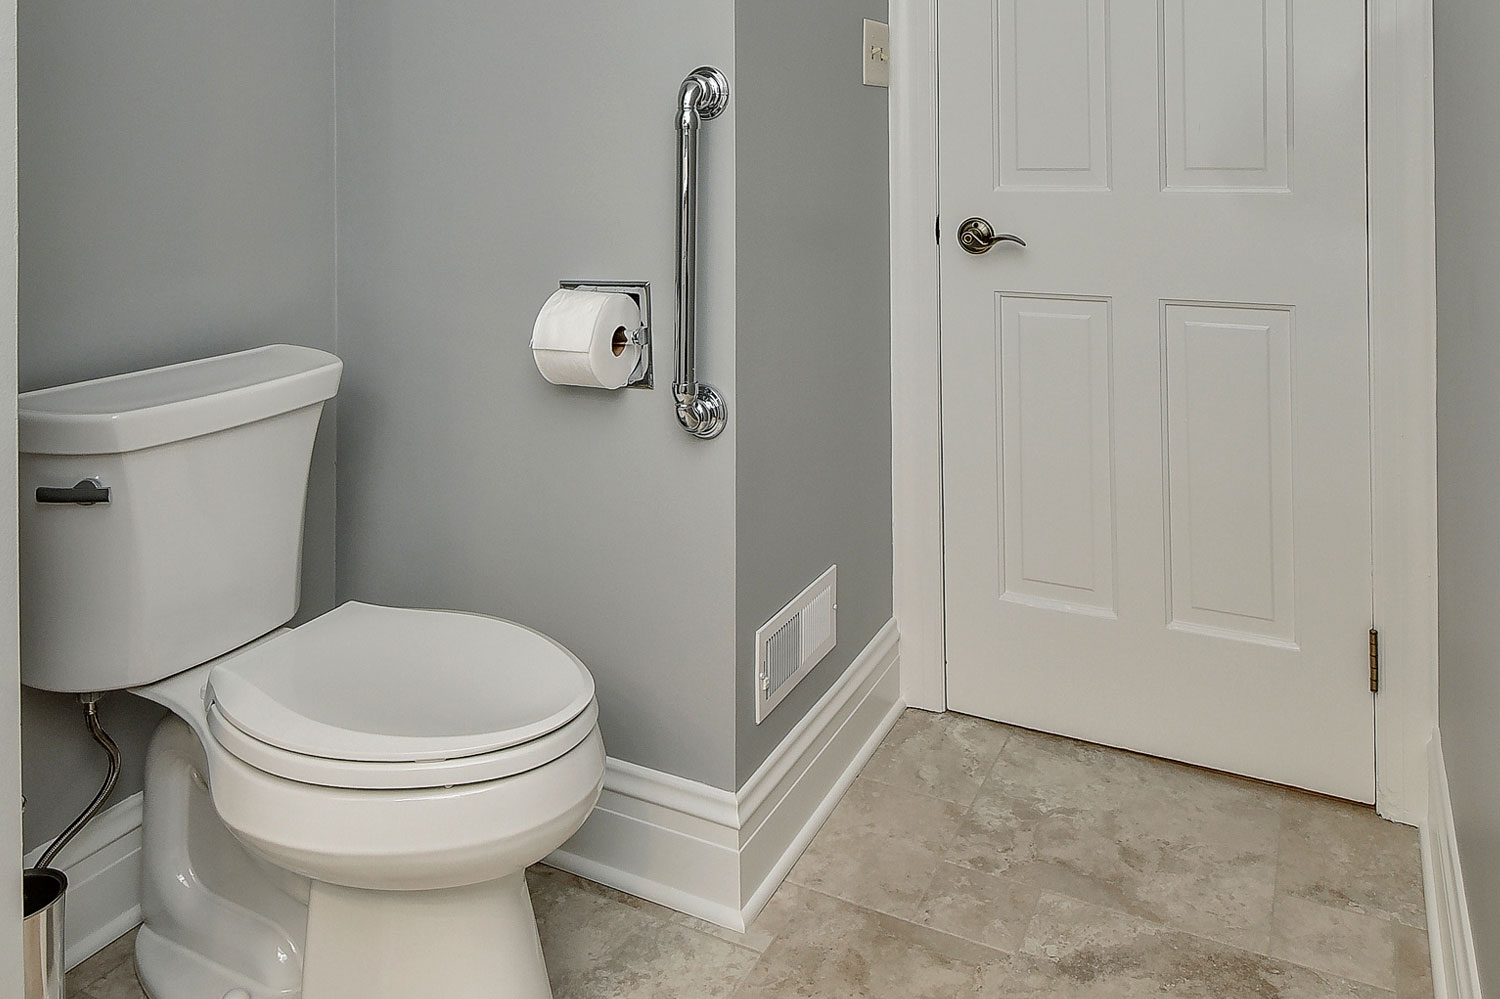 Carl susan 39 s powder room remodel pictures home for Bathroom design service